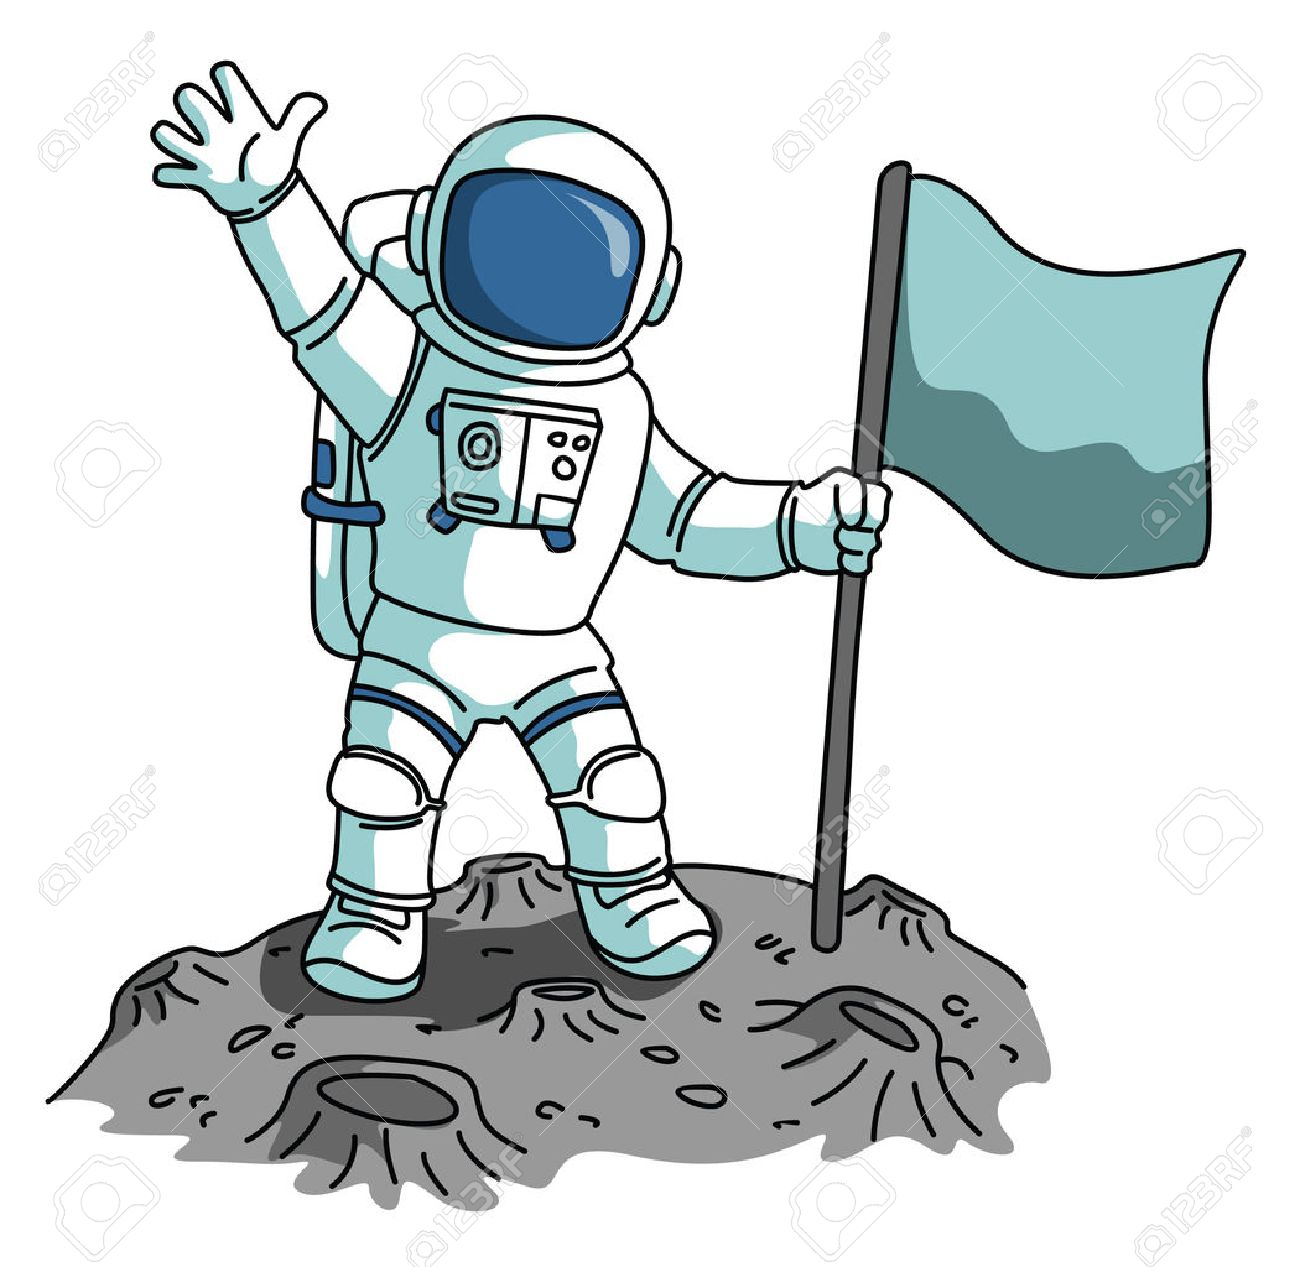 astronaut royalty free cliparts vectors and stock illustration rh 123rf com astronaute clipart clipart astronaute